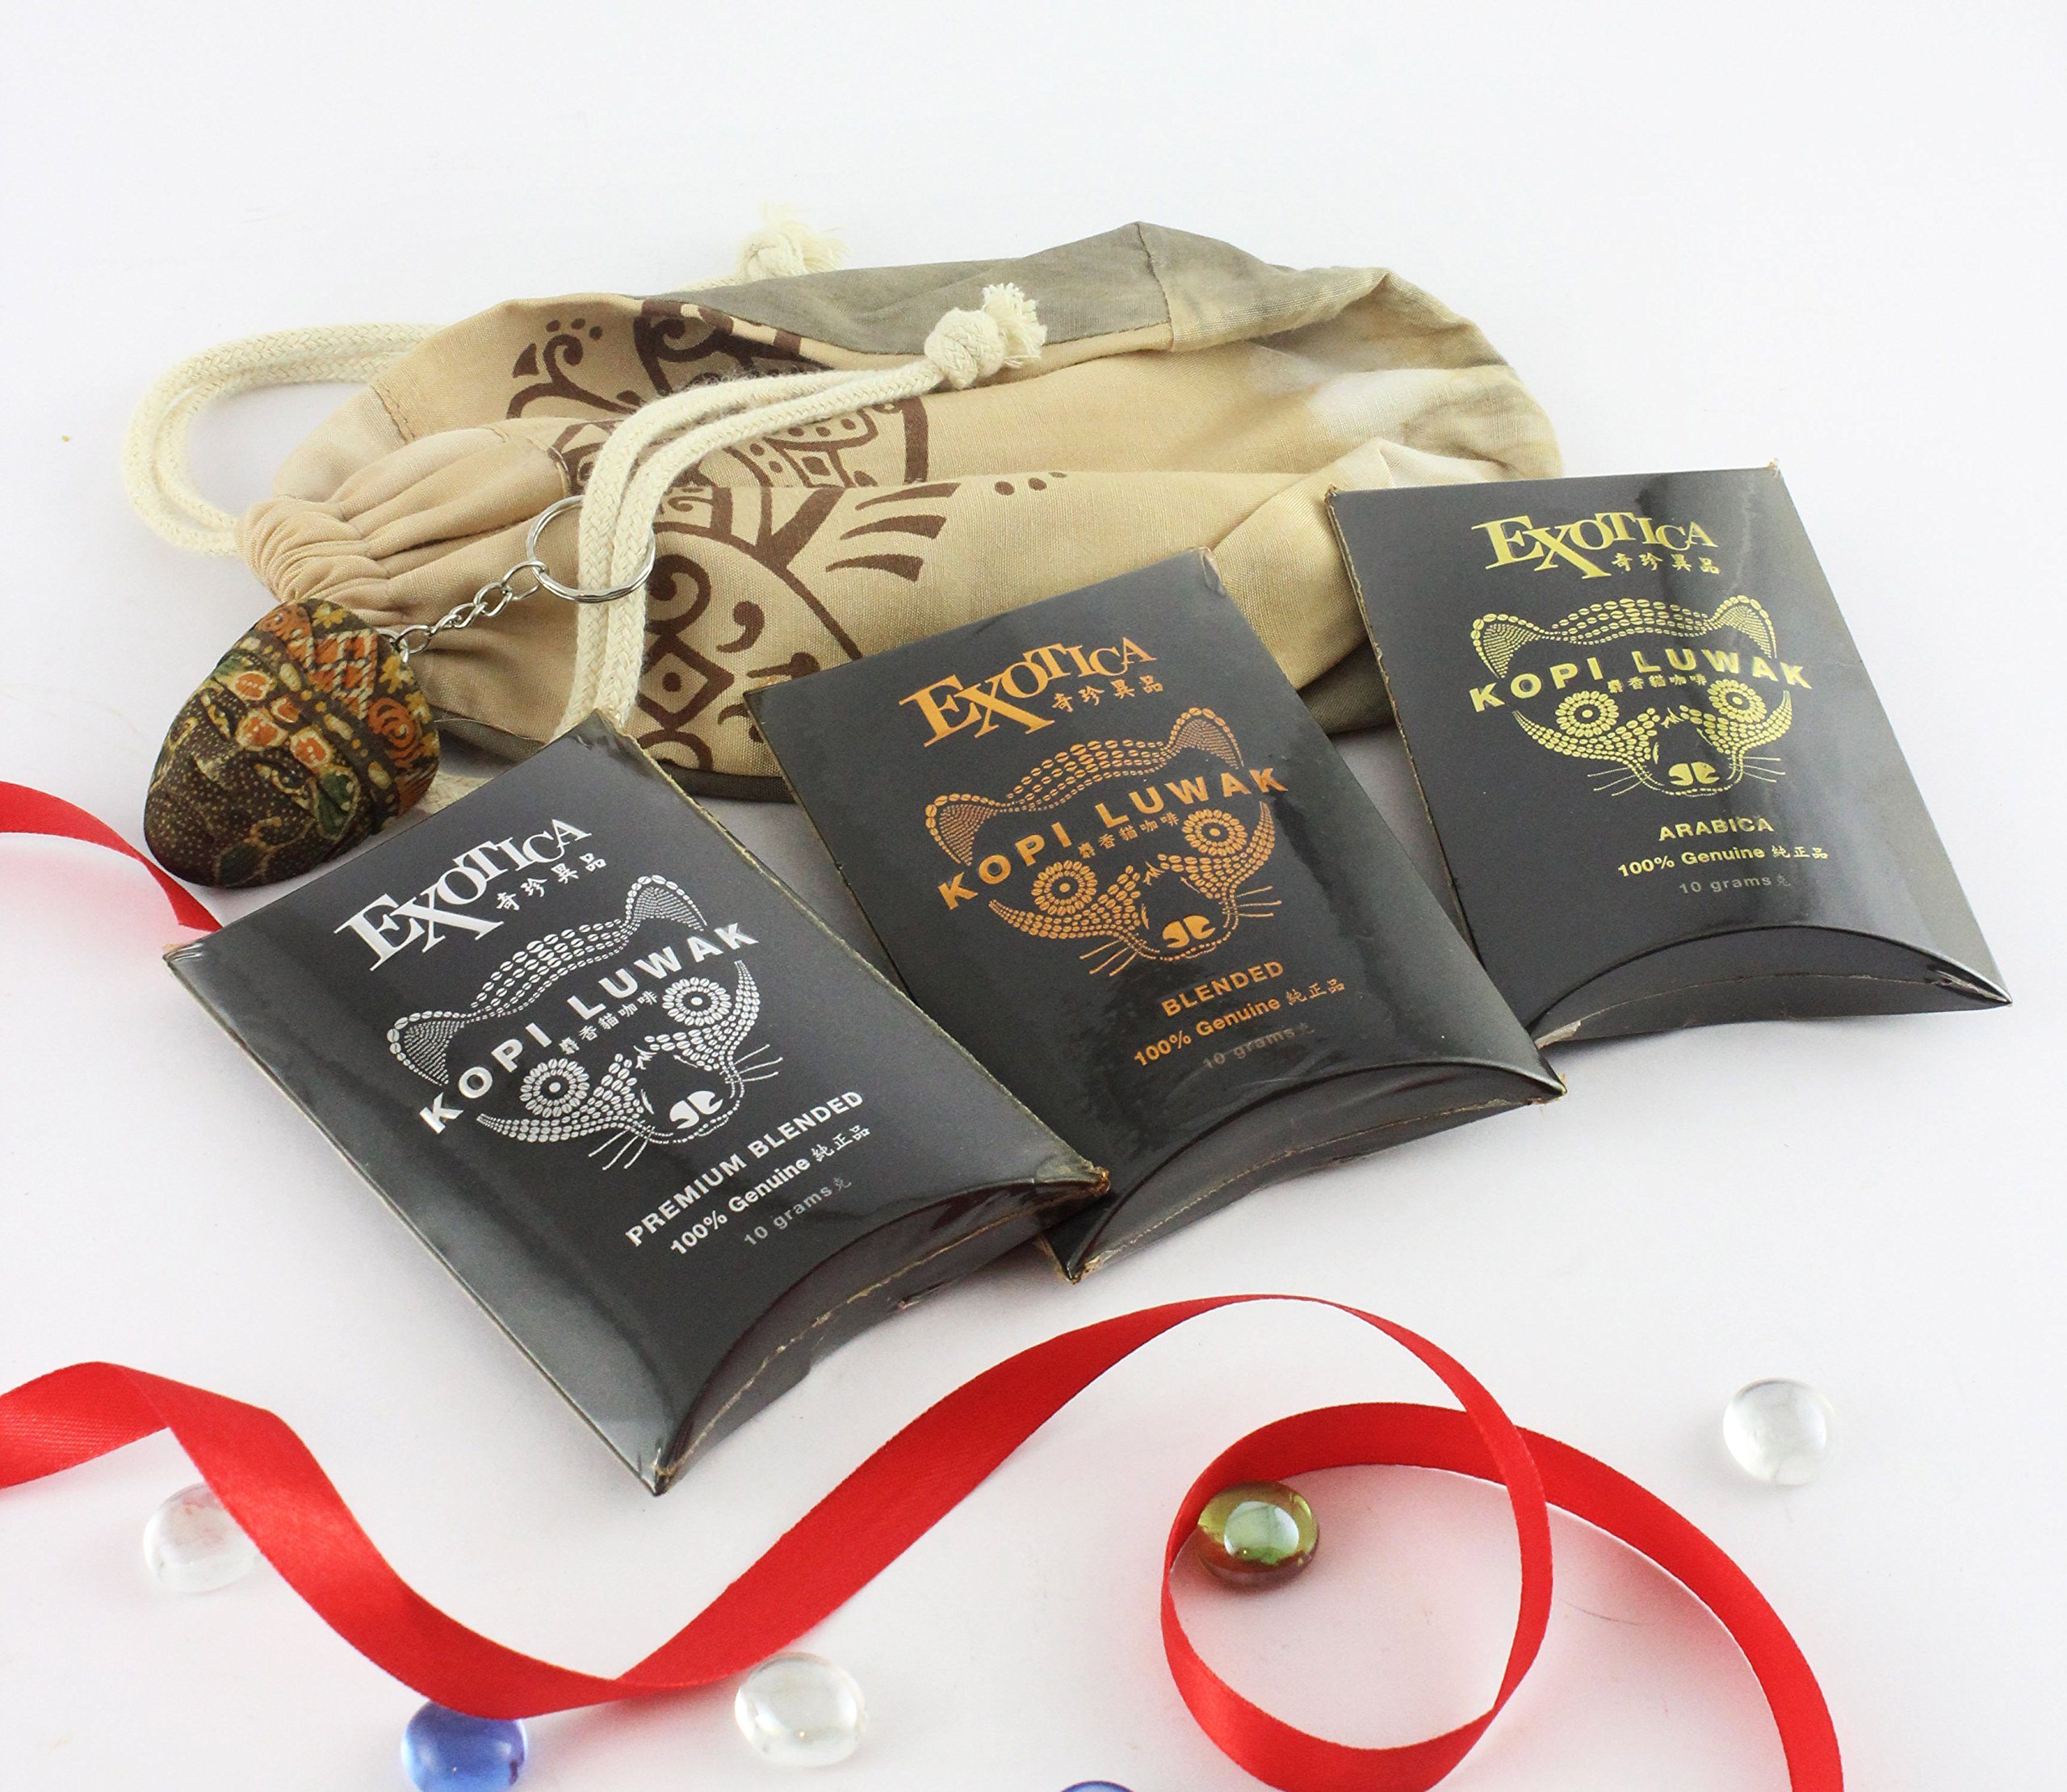 Exotica Kopi Luwak Samplers Gift Set in Natural Dyed Pouch [FREE Expedited Shipping]